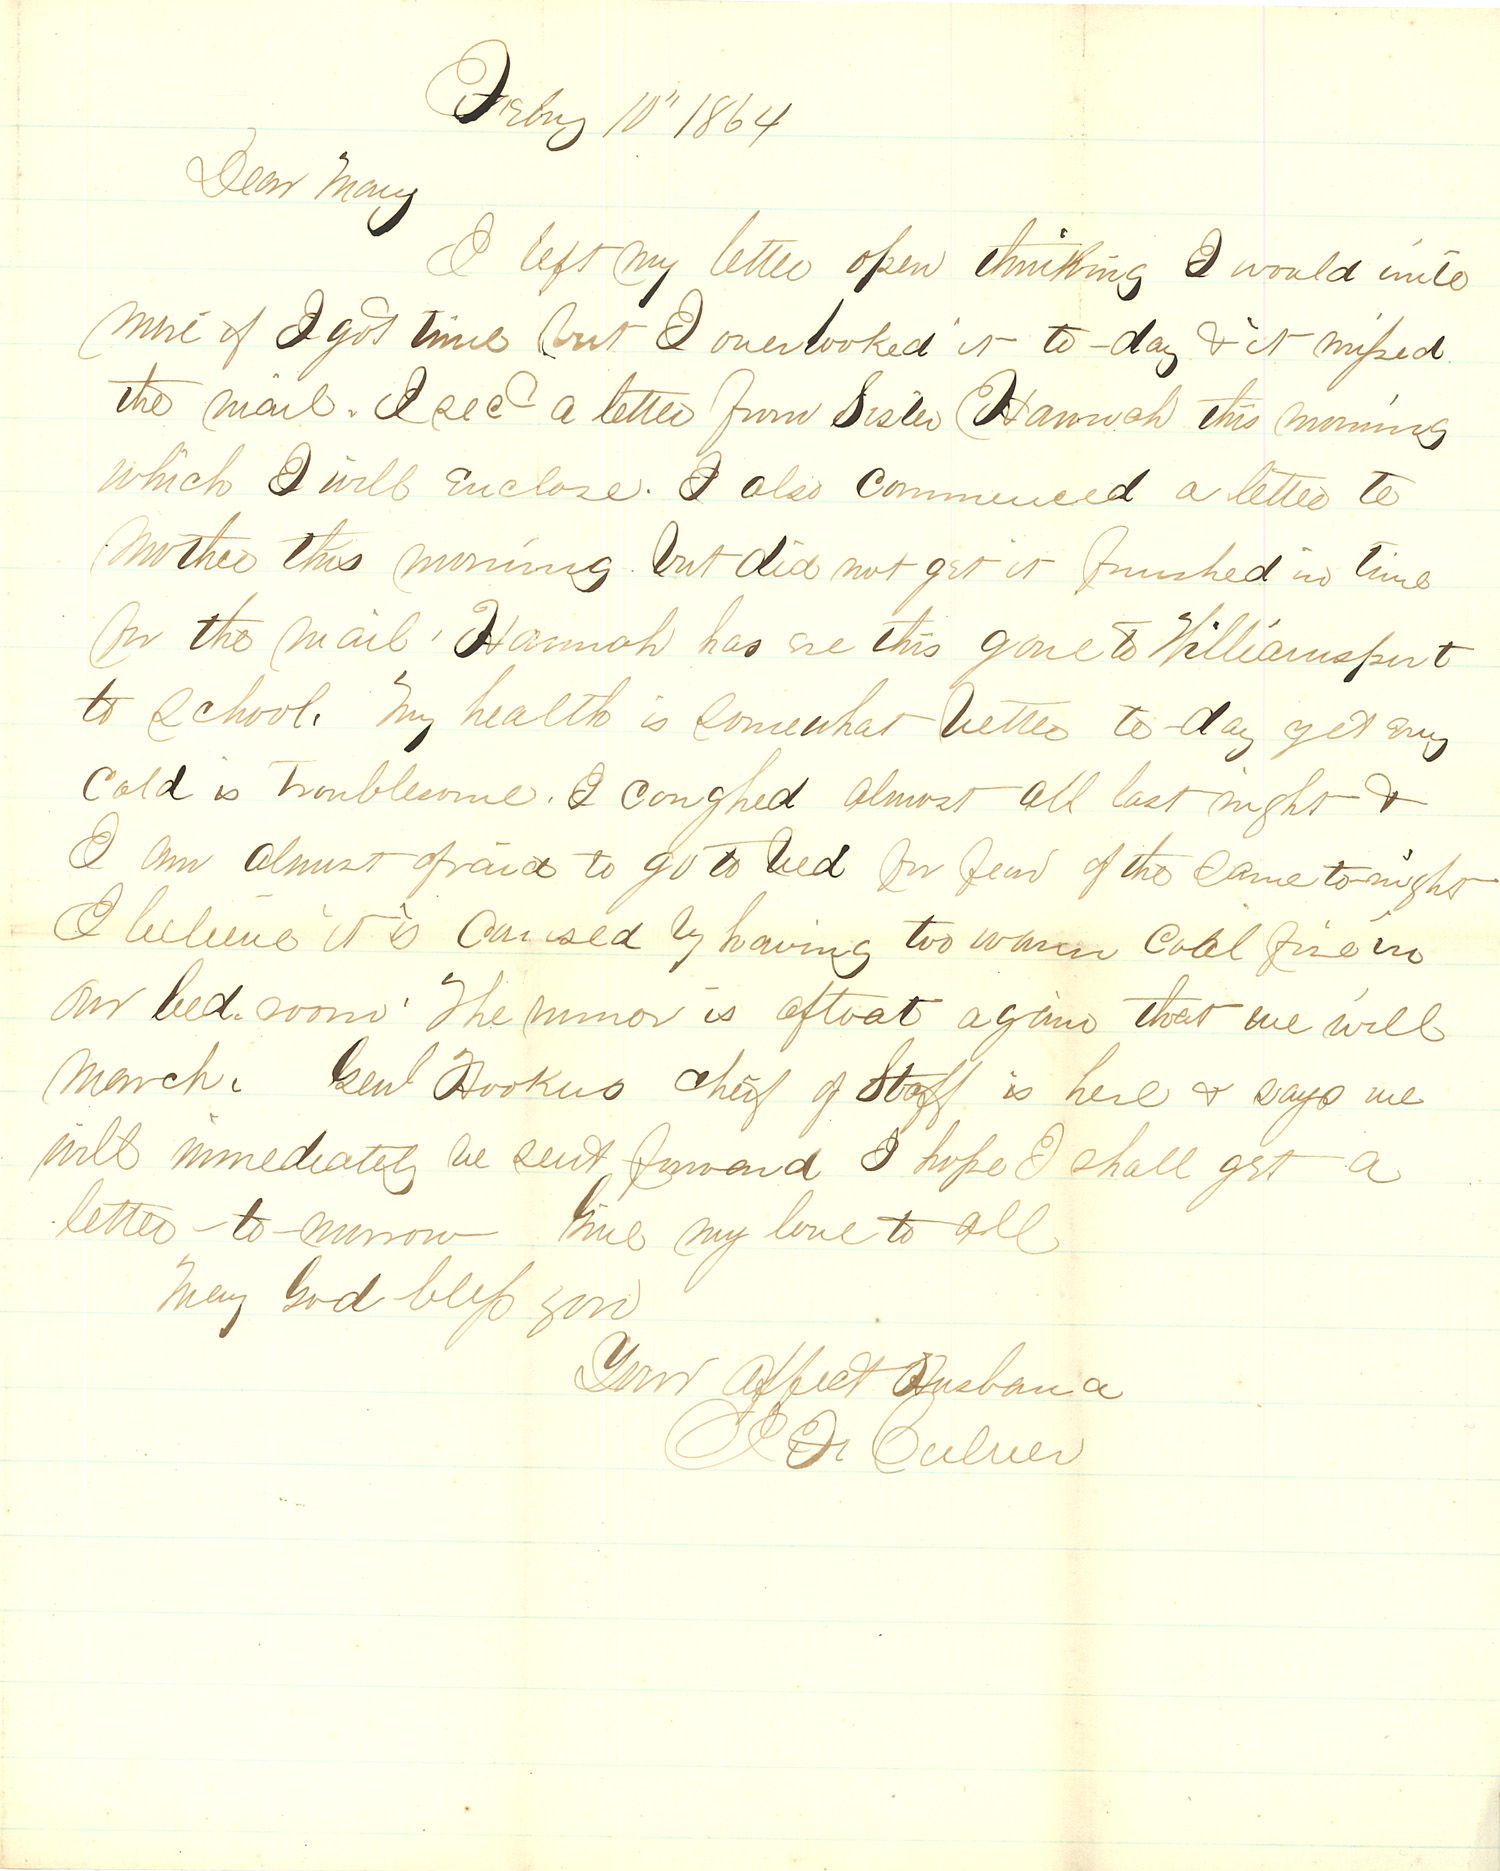 Joseph Culver Letter, February 10, 1864, Page 1